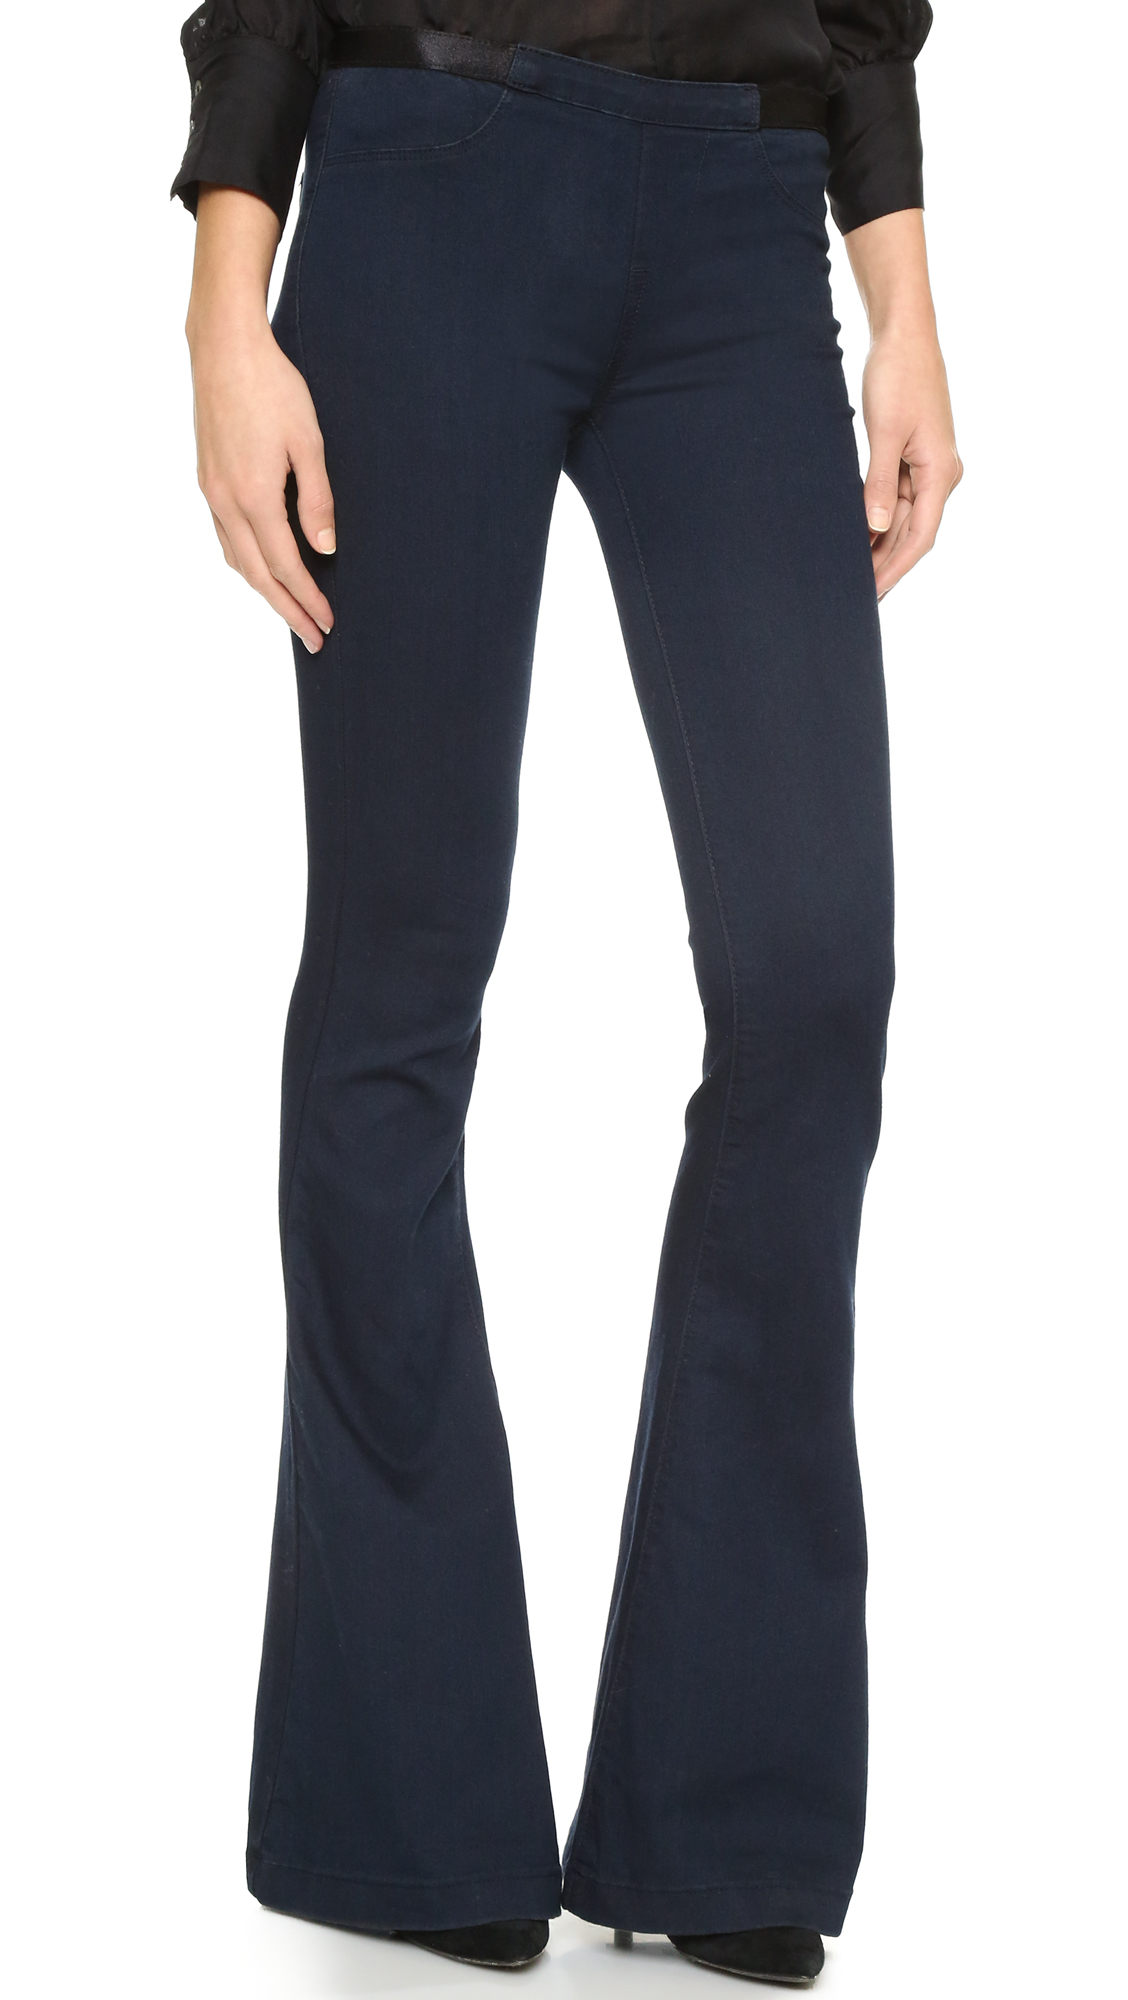 Blank Denim Pull On Flare Jeans | 15% off first app purchase with ...